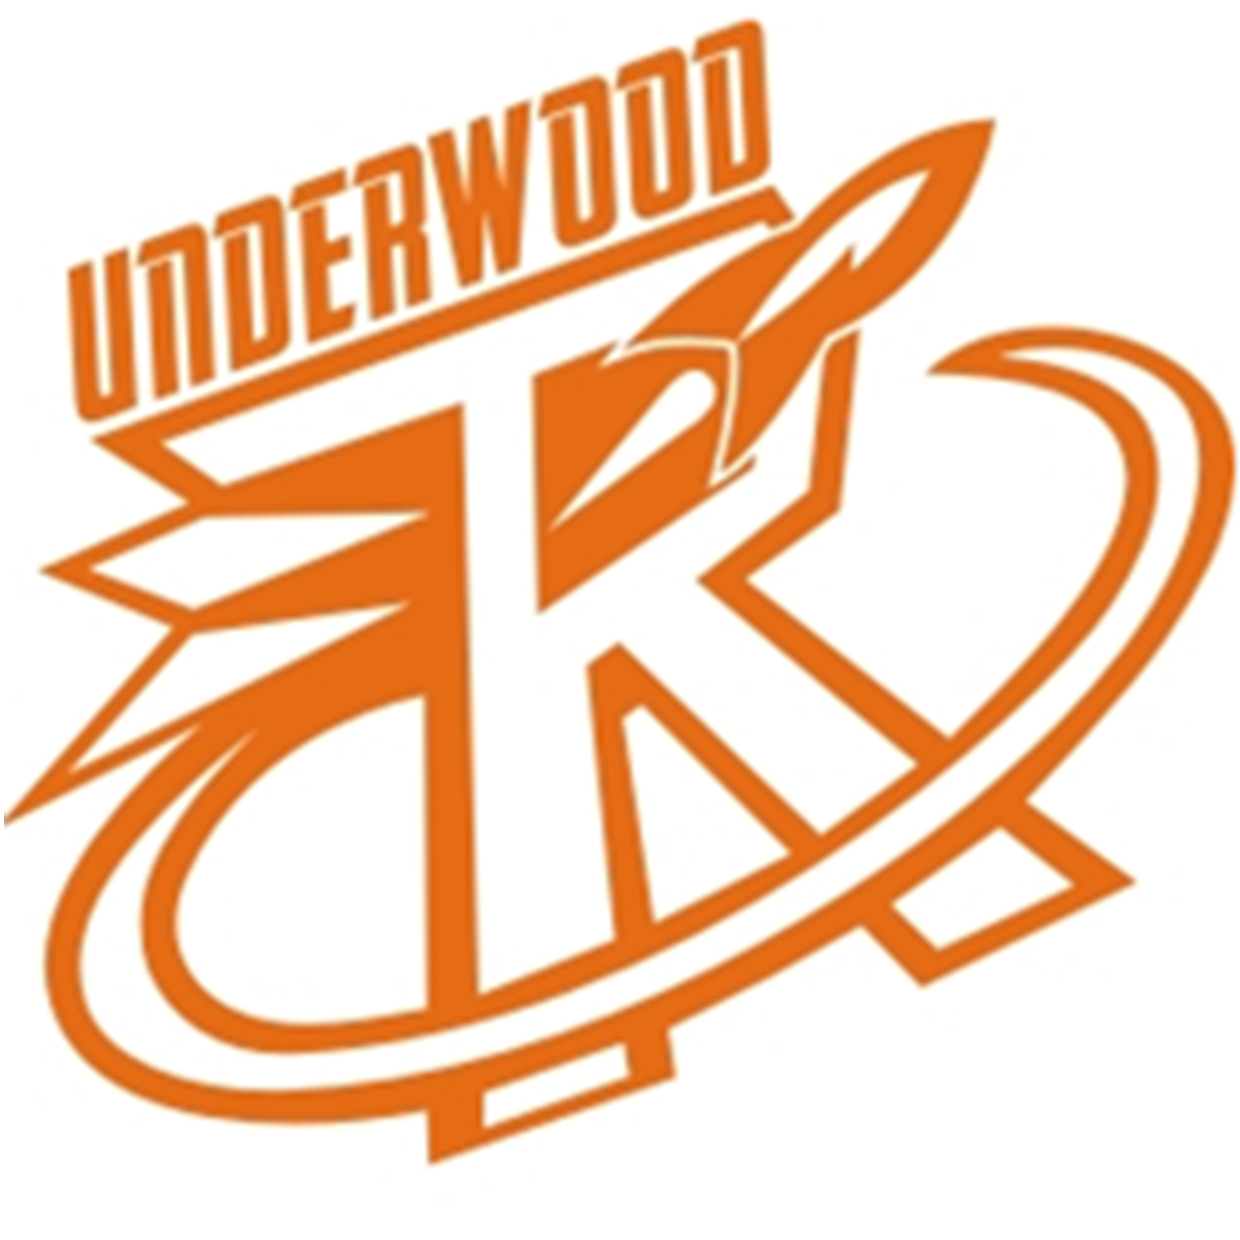 Underwood Rockets